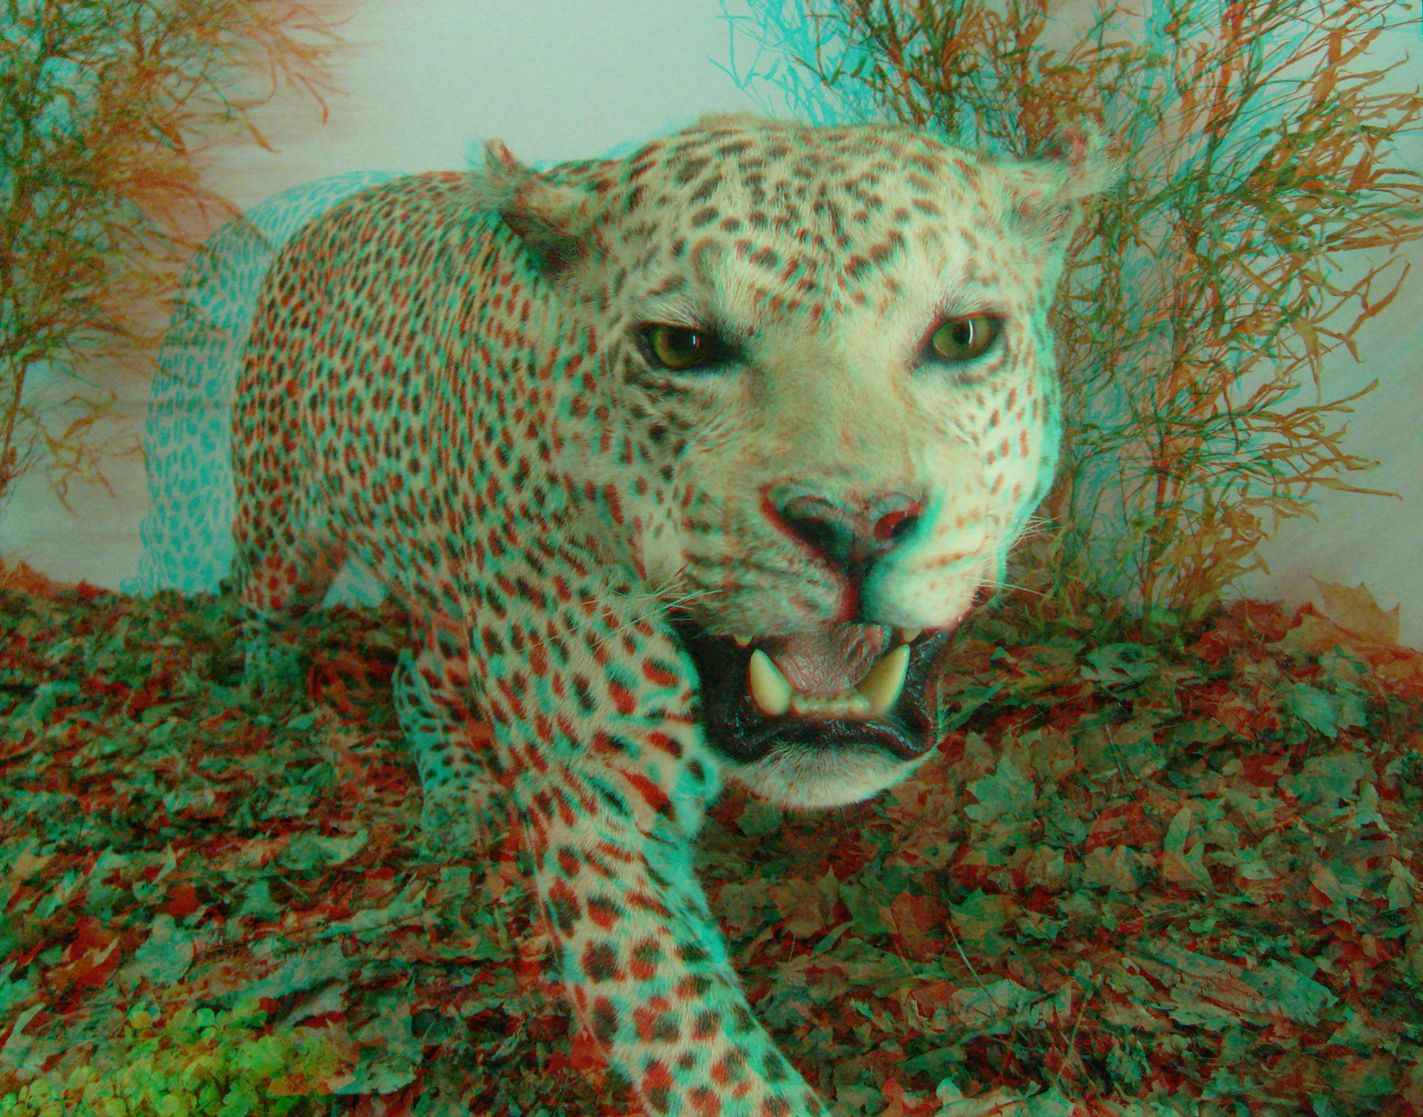 Puma 3d pictures projects to try pinterest puma 3d pictures voltagebd Image collections